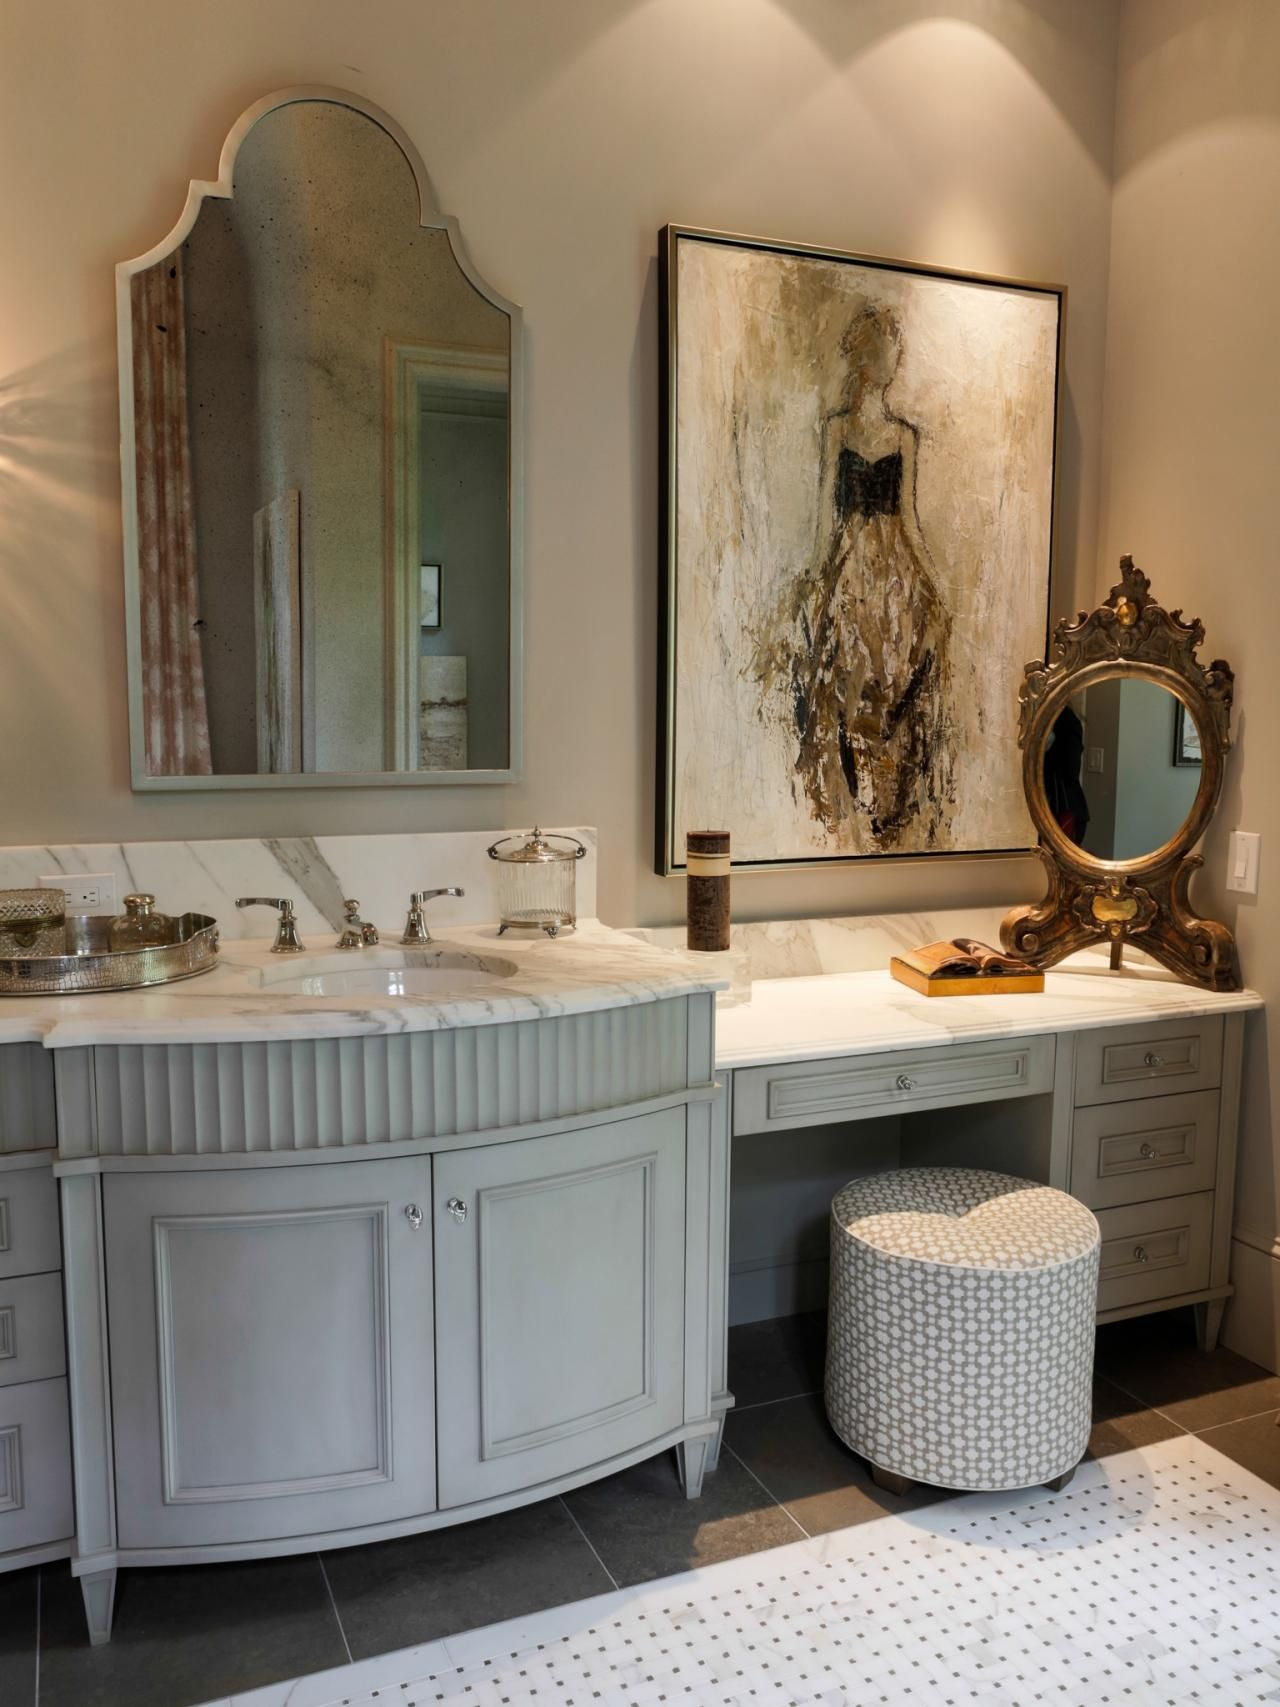 An Ornate Gold Mirror Complements The Larger Vanity In This French Country Bathroom